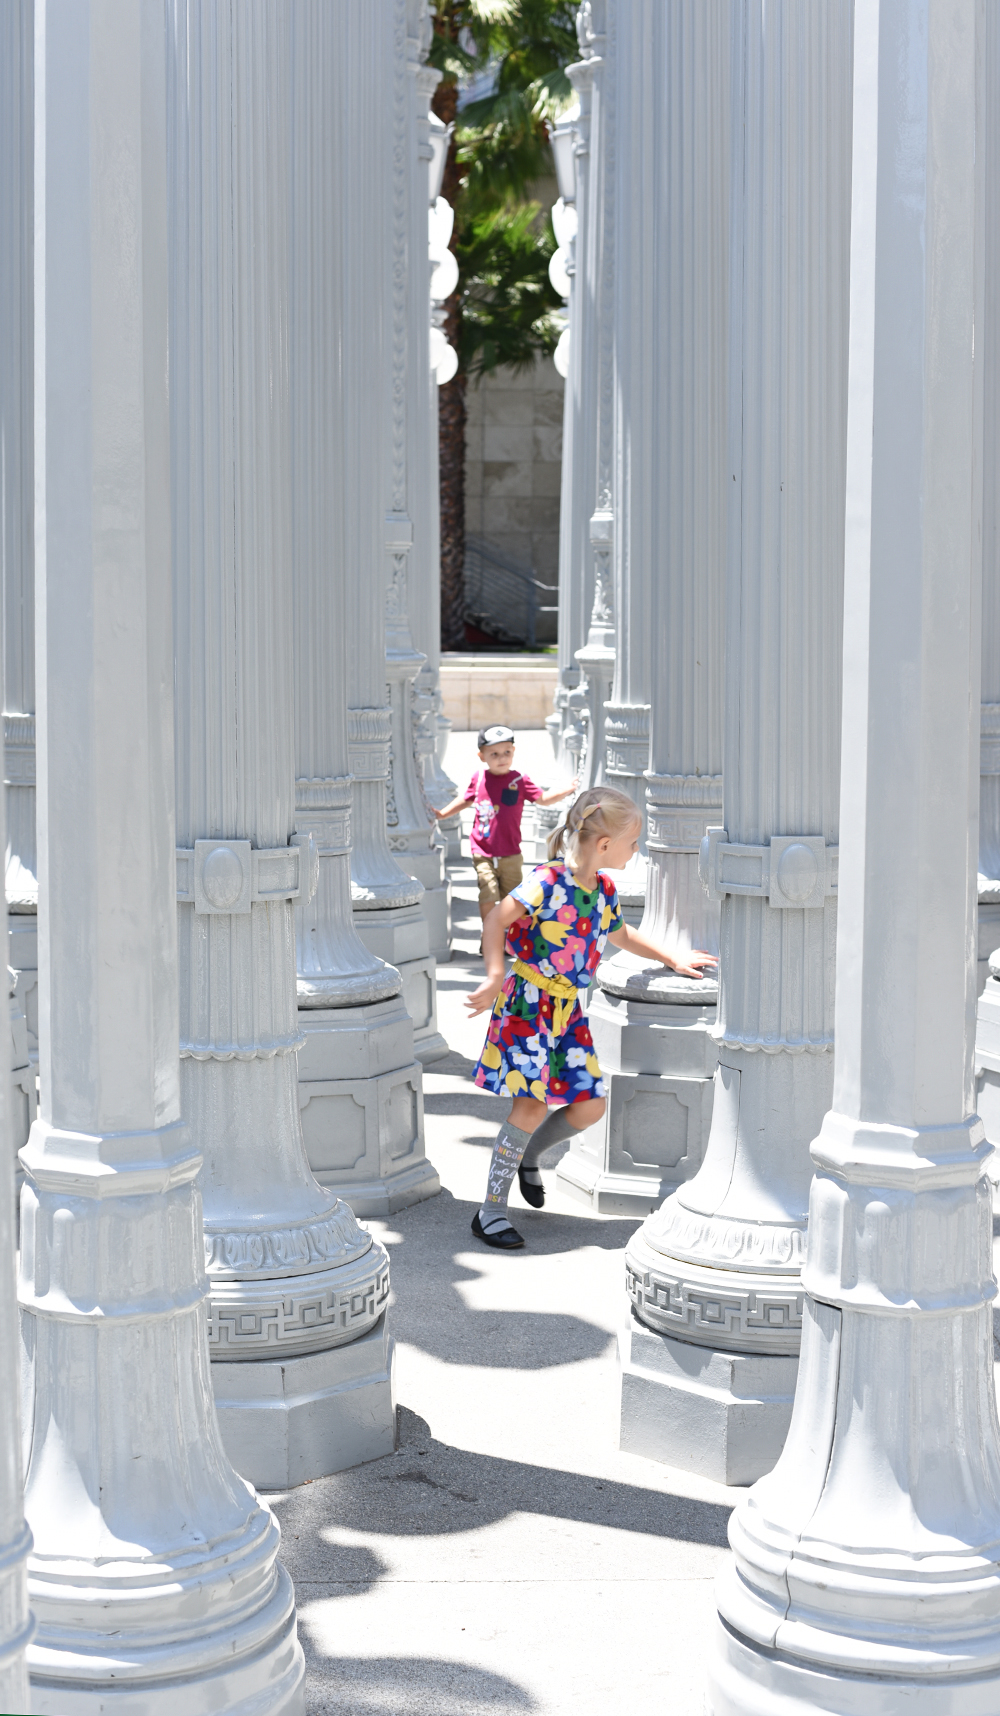 some highlights from our family trip to Los Angeles: LACMA